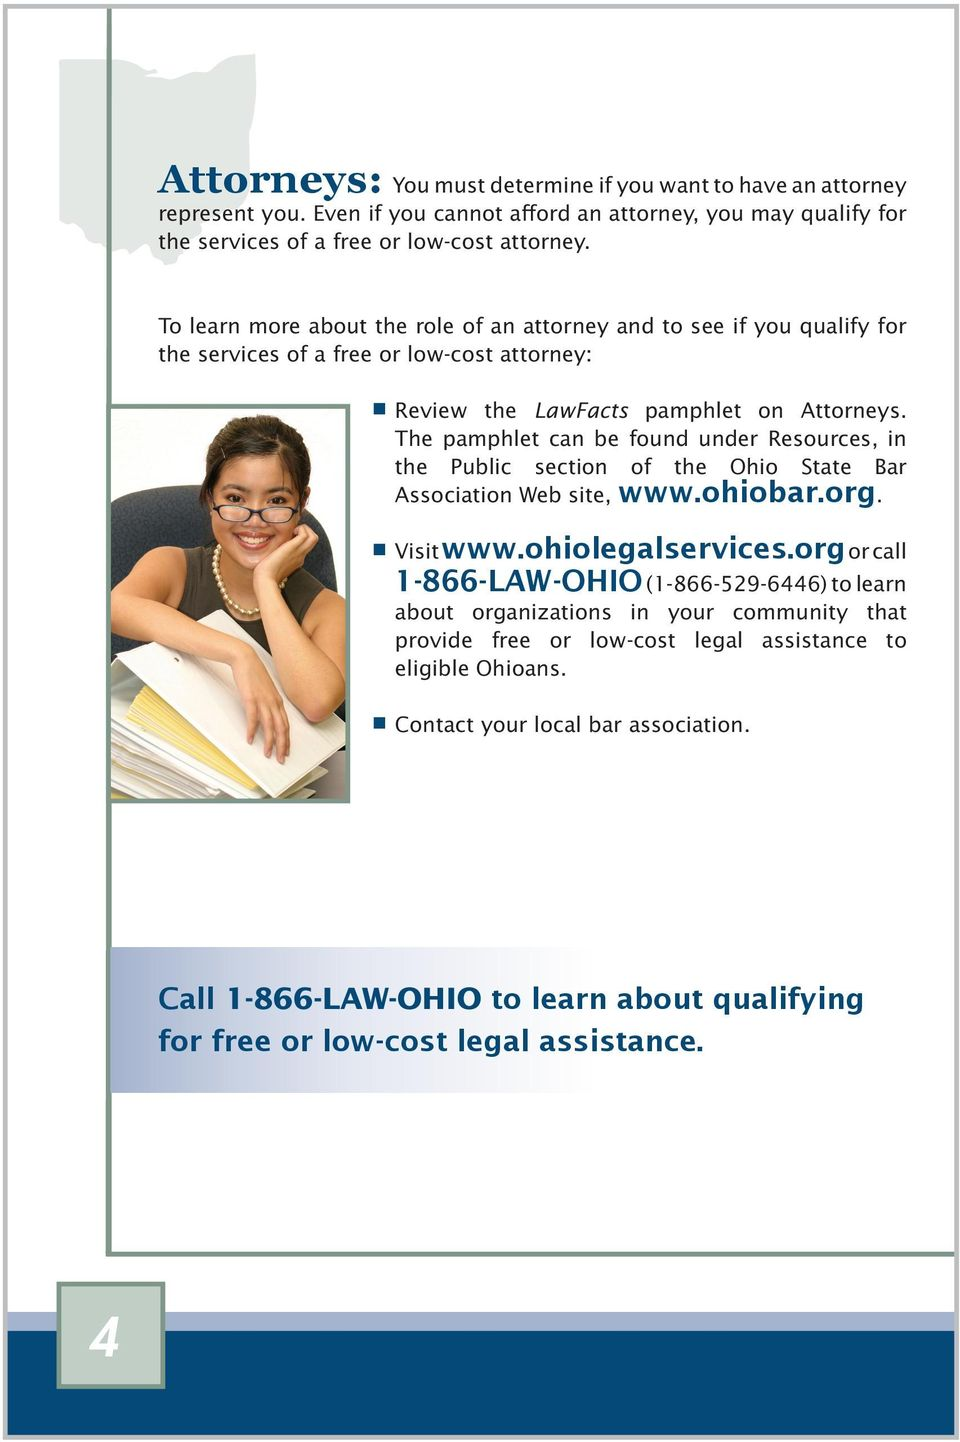 The pamphlet can be found under Resources, in the Public section of the Ohio State Bar Association Web site, www.ohiobar.org. Visit www.ohiolegalservices.